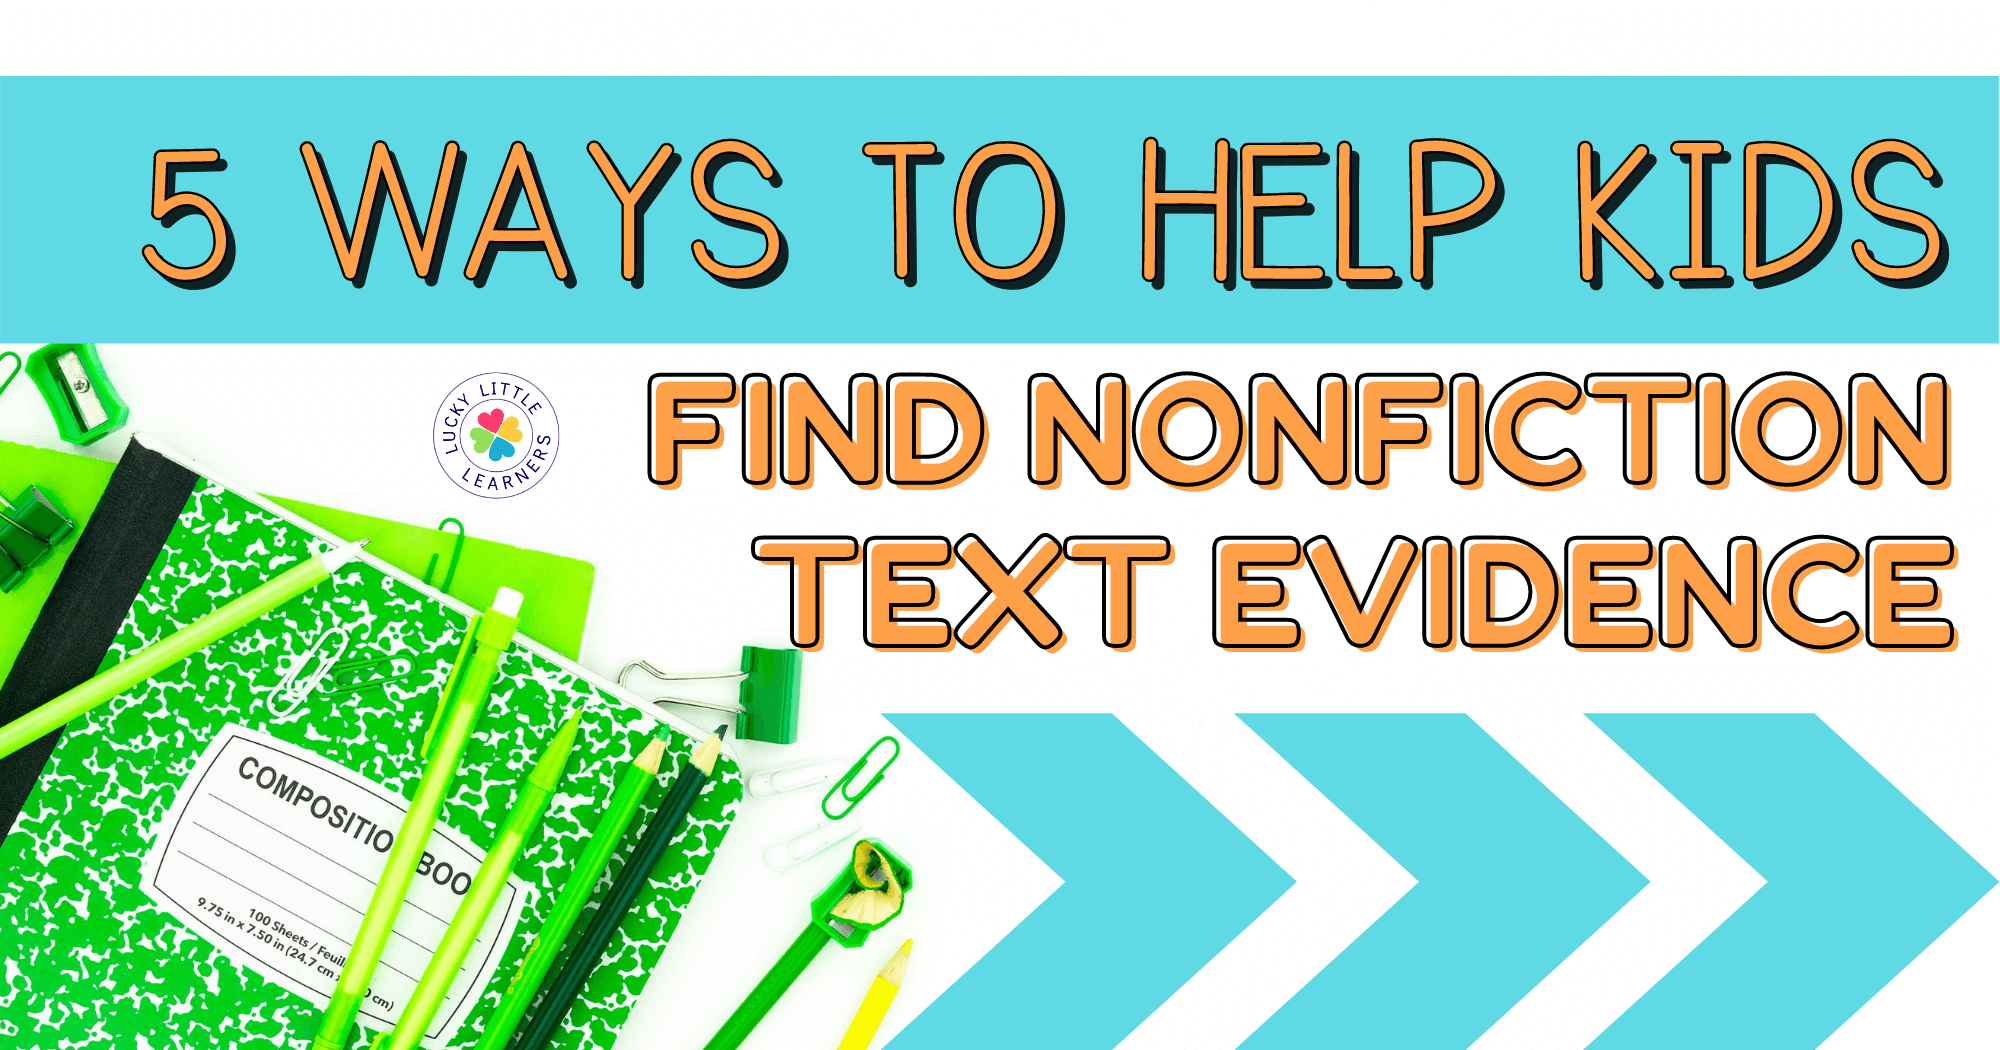 5 Ways to Help Kids Find Nonfiction Text Evidence